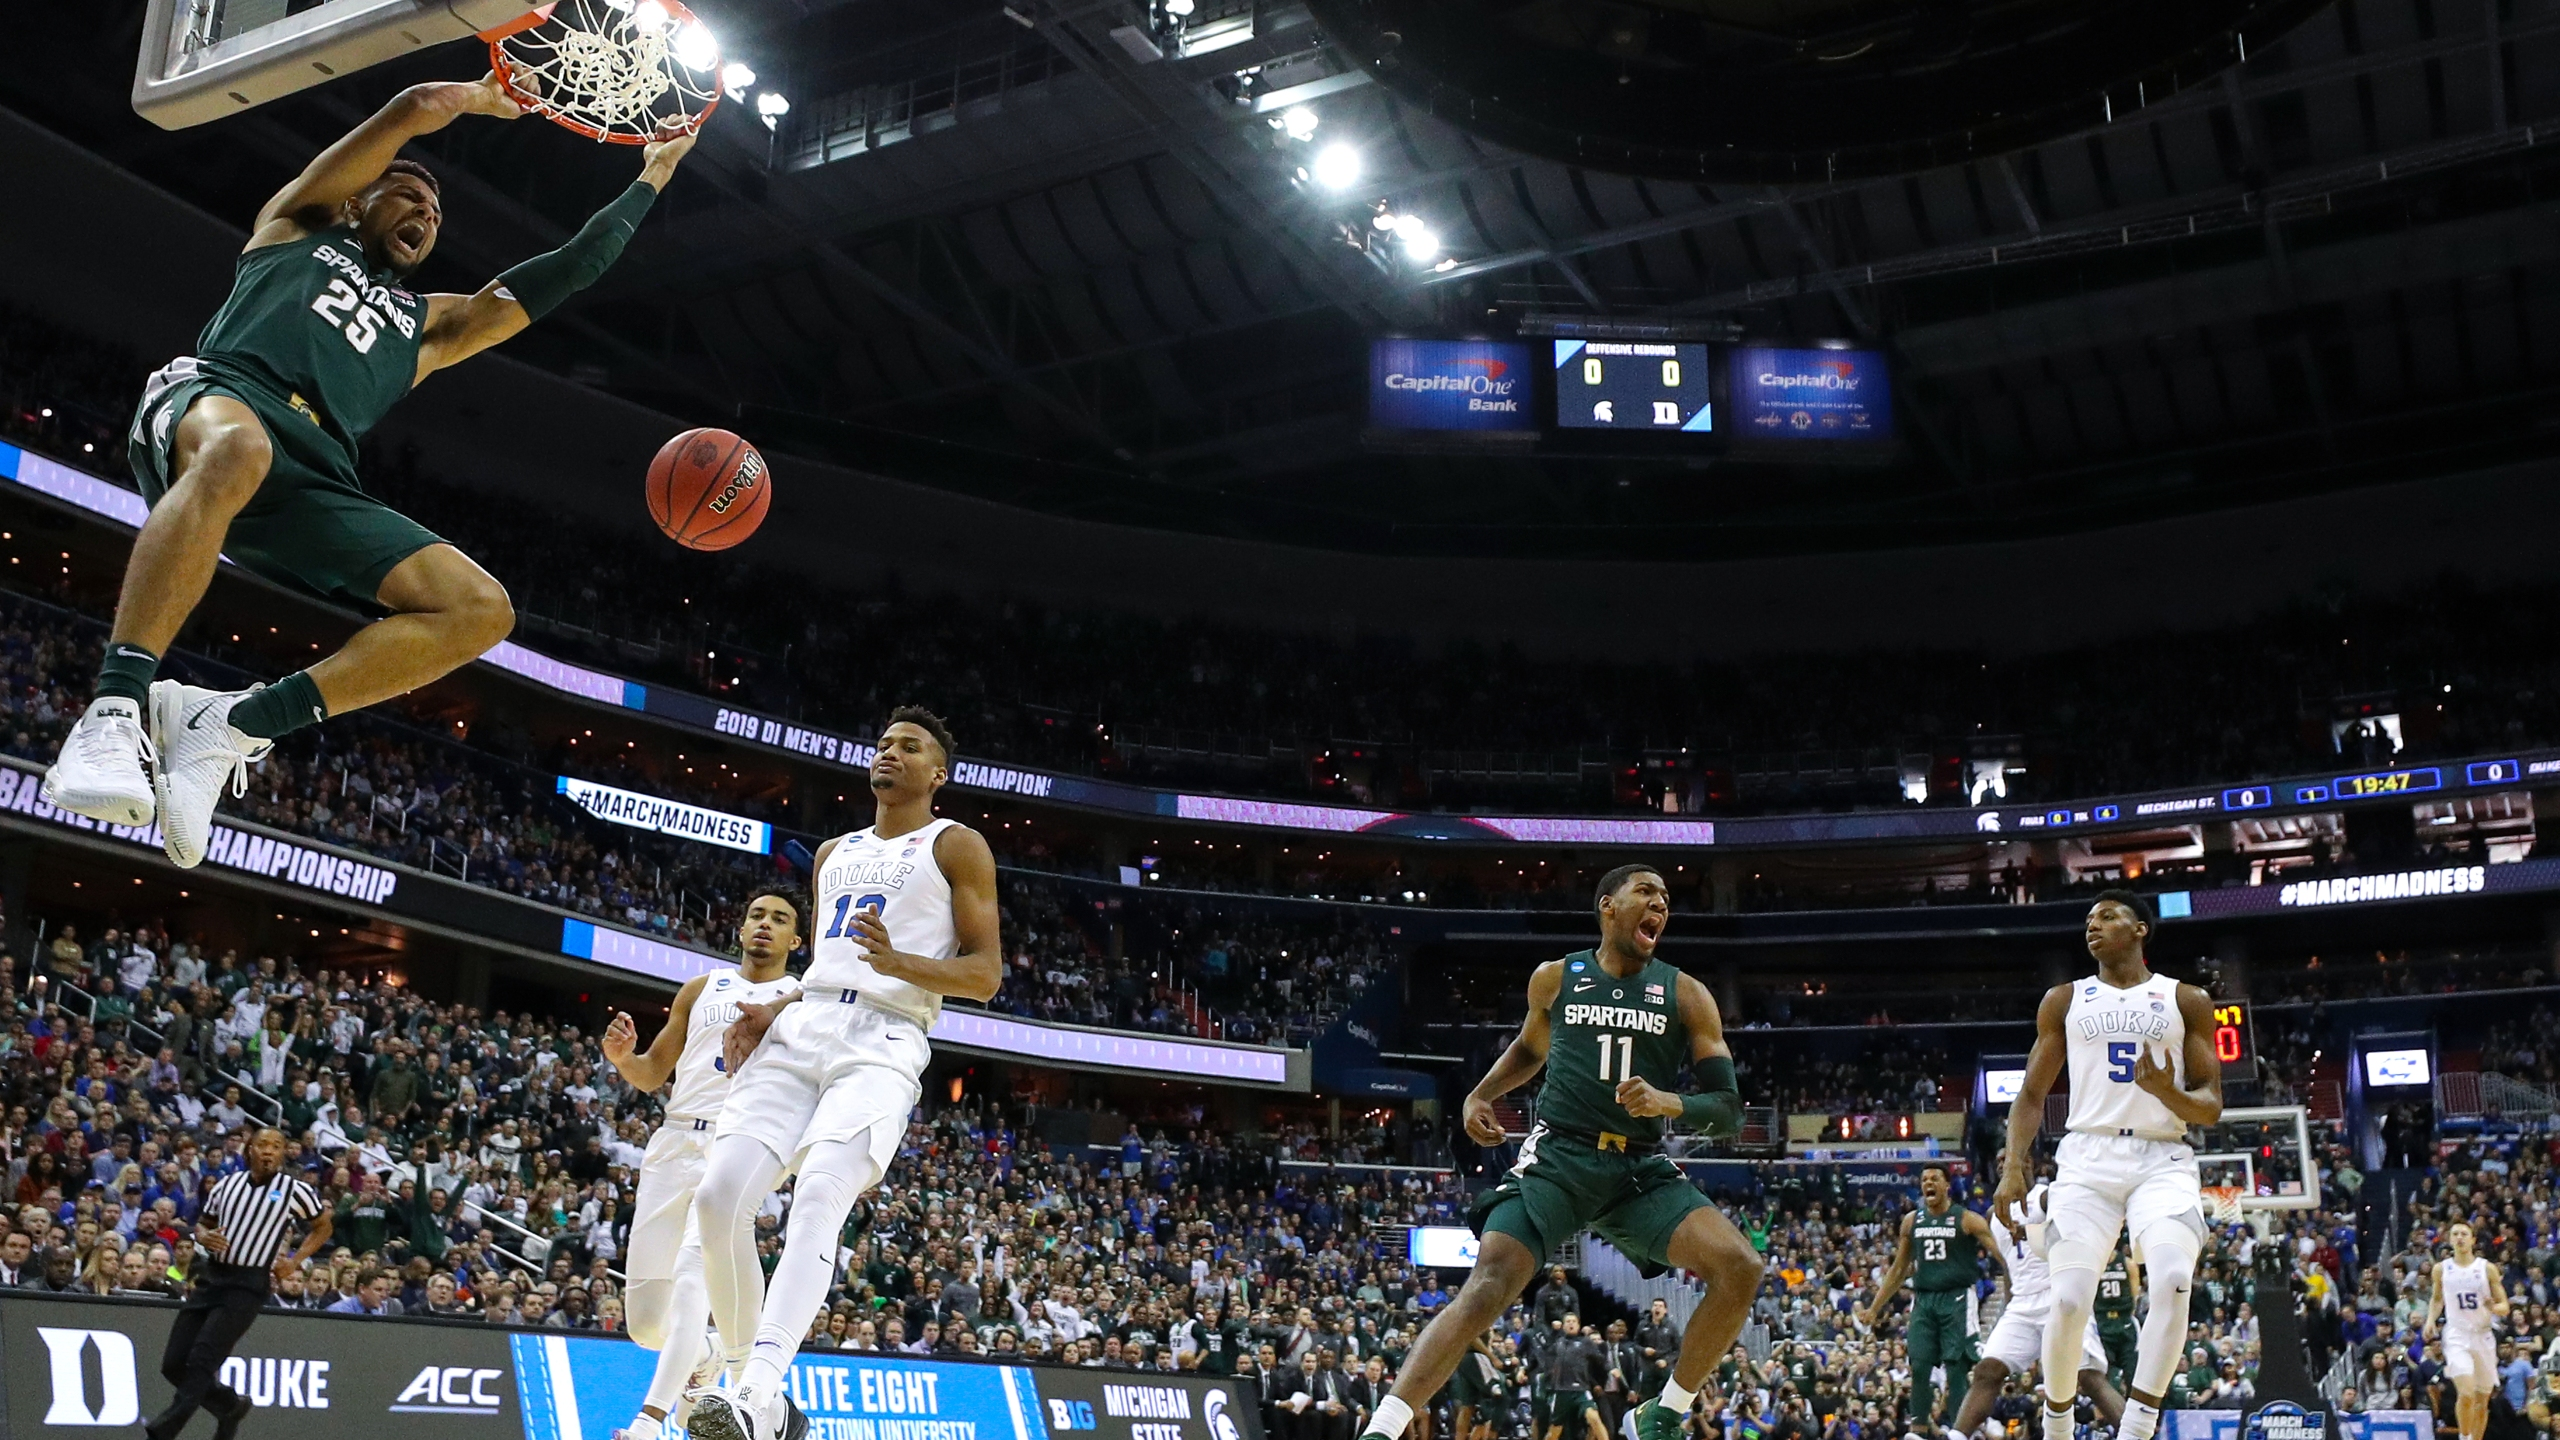 Kenny Goins #25 of the Michigan State Spartans dunks the ball against the Duke Blue Devils during the first half in the East Regional game of the 2019 NCAA Men's Basketball Tournament at Capital One Arena on March 31, 2019 in Washington, D.C. (Patrick Smith/Getty Images)